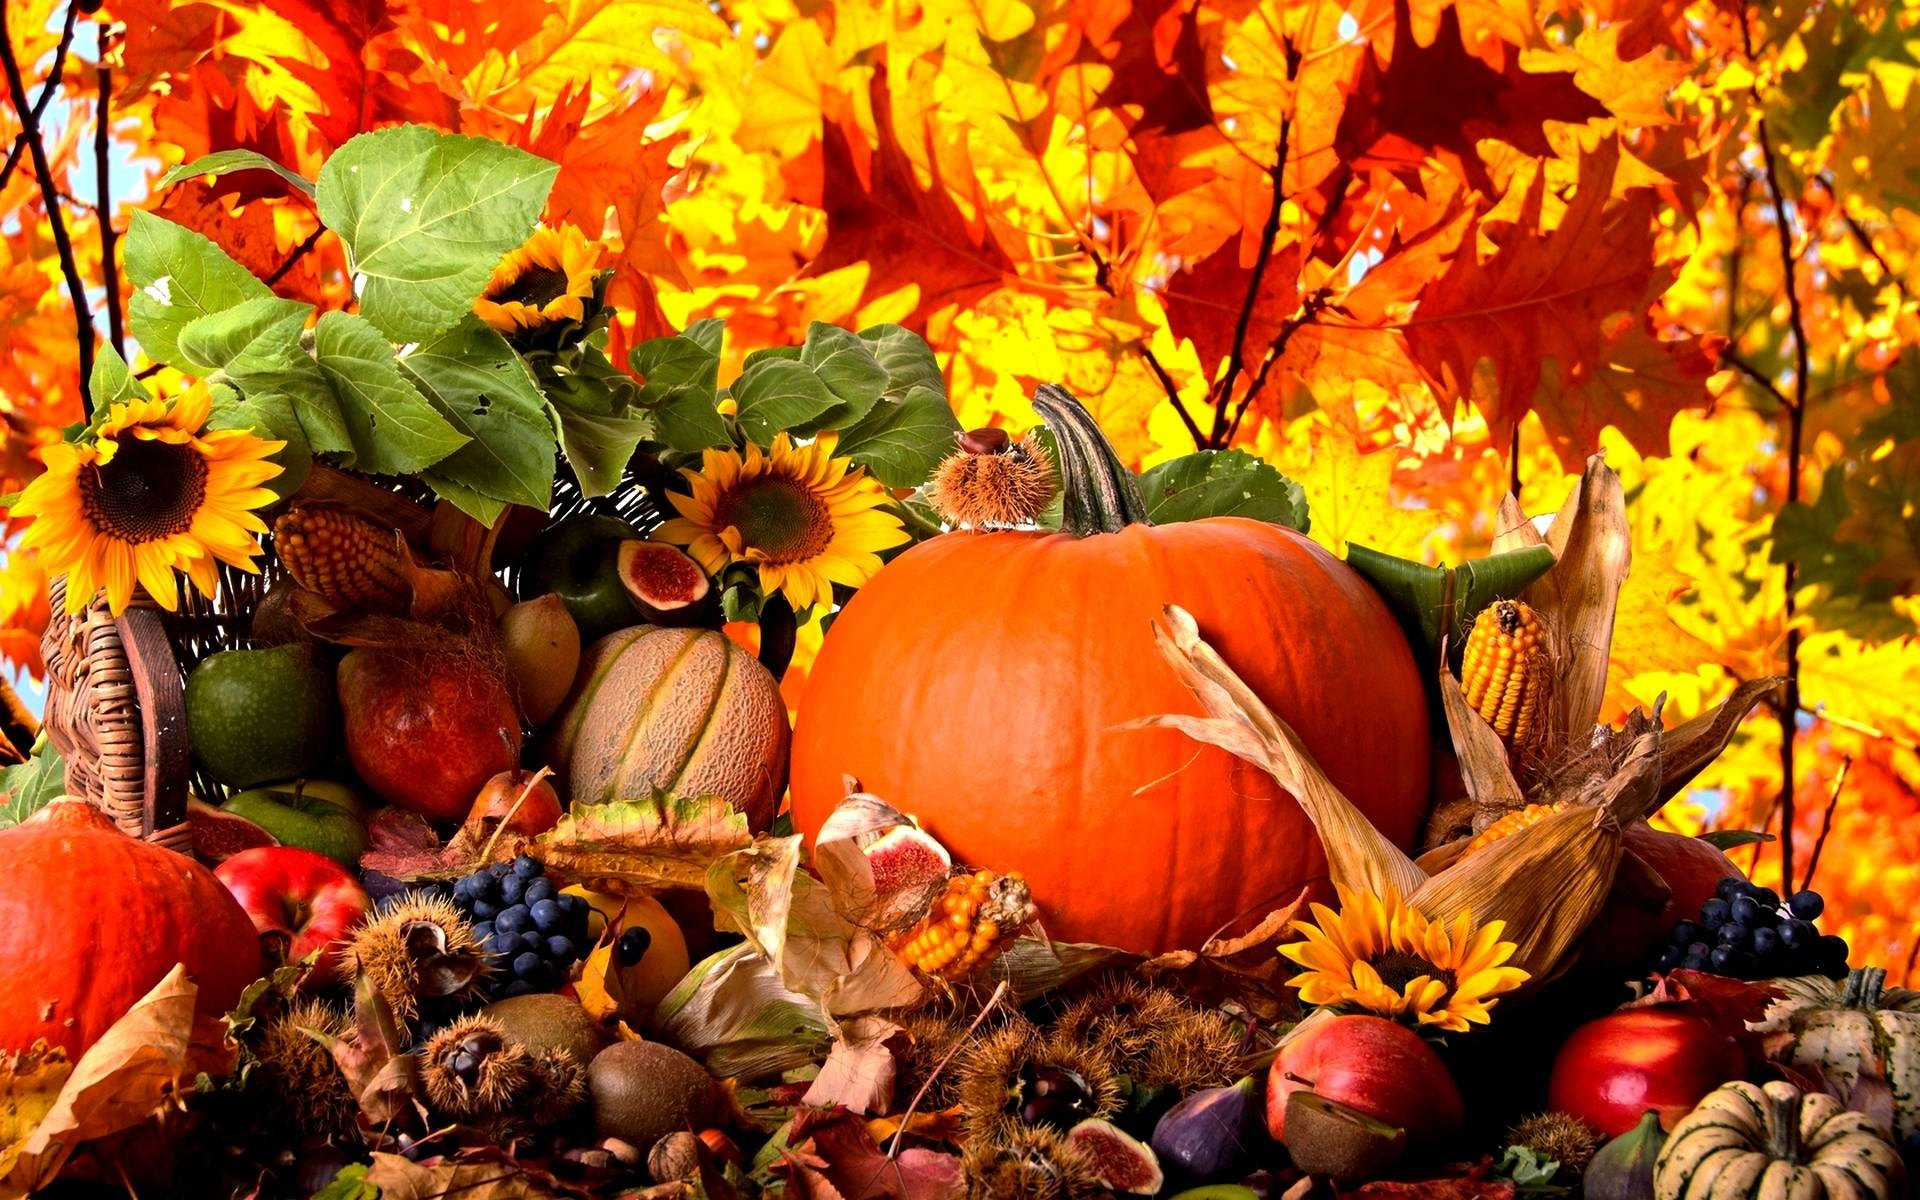 Fall Harvest Wallpaper High Quality